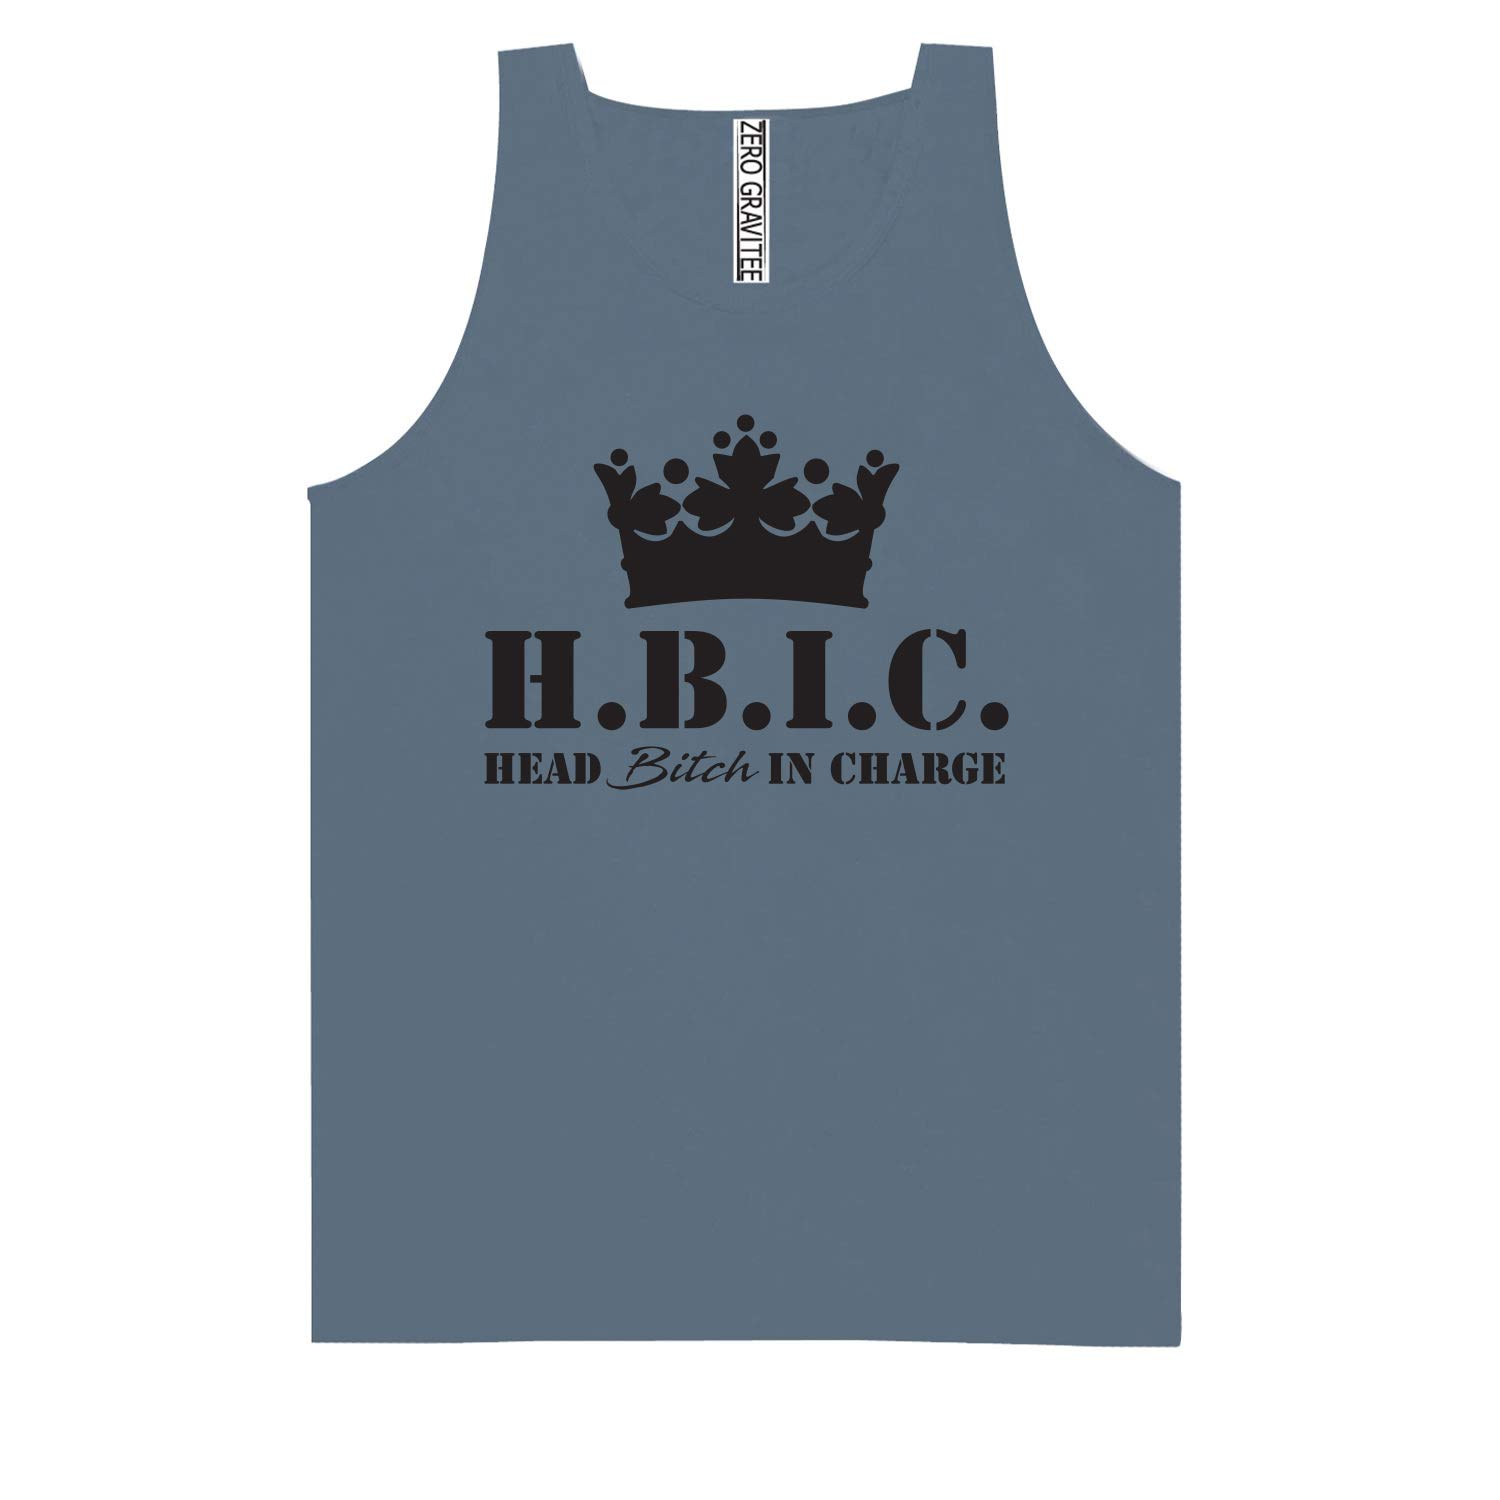 H.B.I.C Head Bitch in Charge Adult Pigment Dye Tank Top